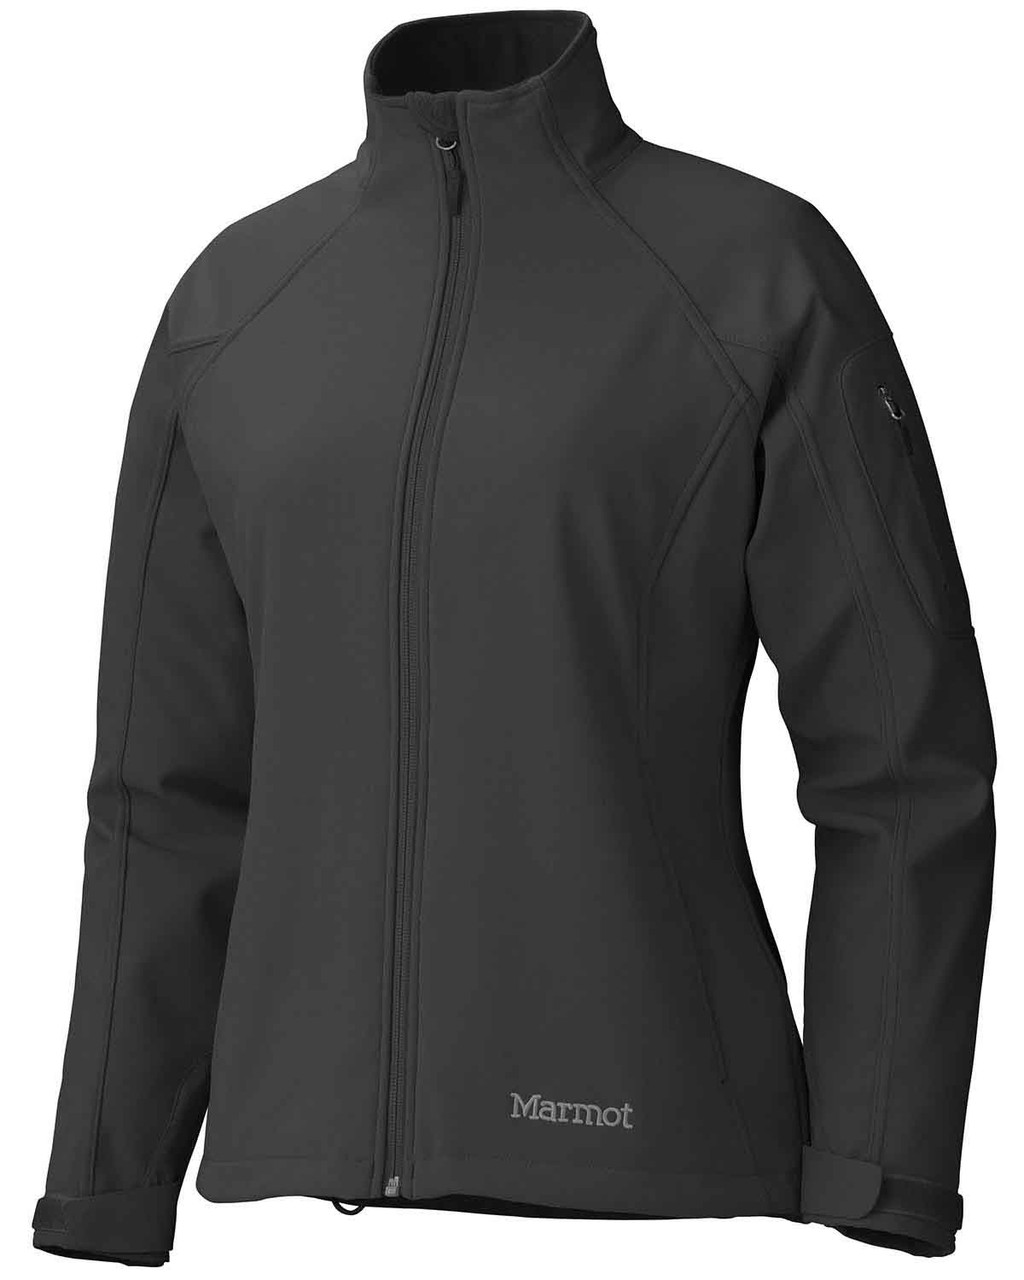 Black - Jacket, 85000 Marmot Ladies' Gravity Jacket | BlankClothing.ca